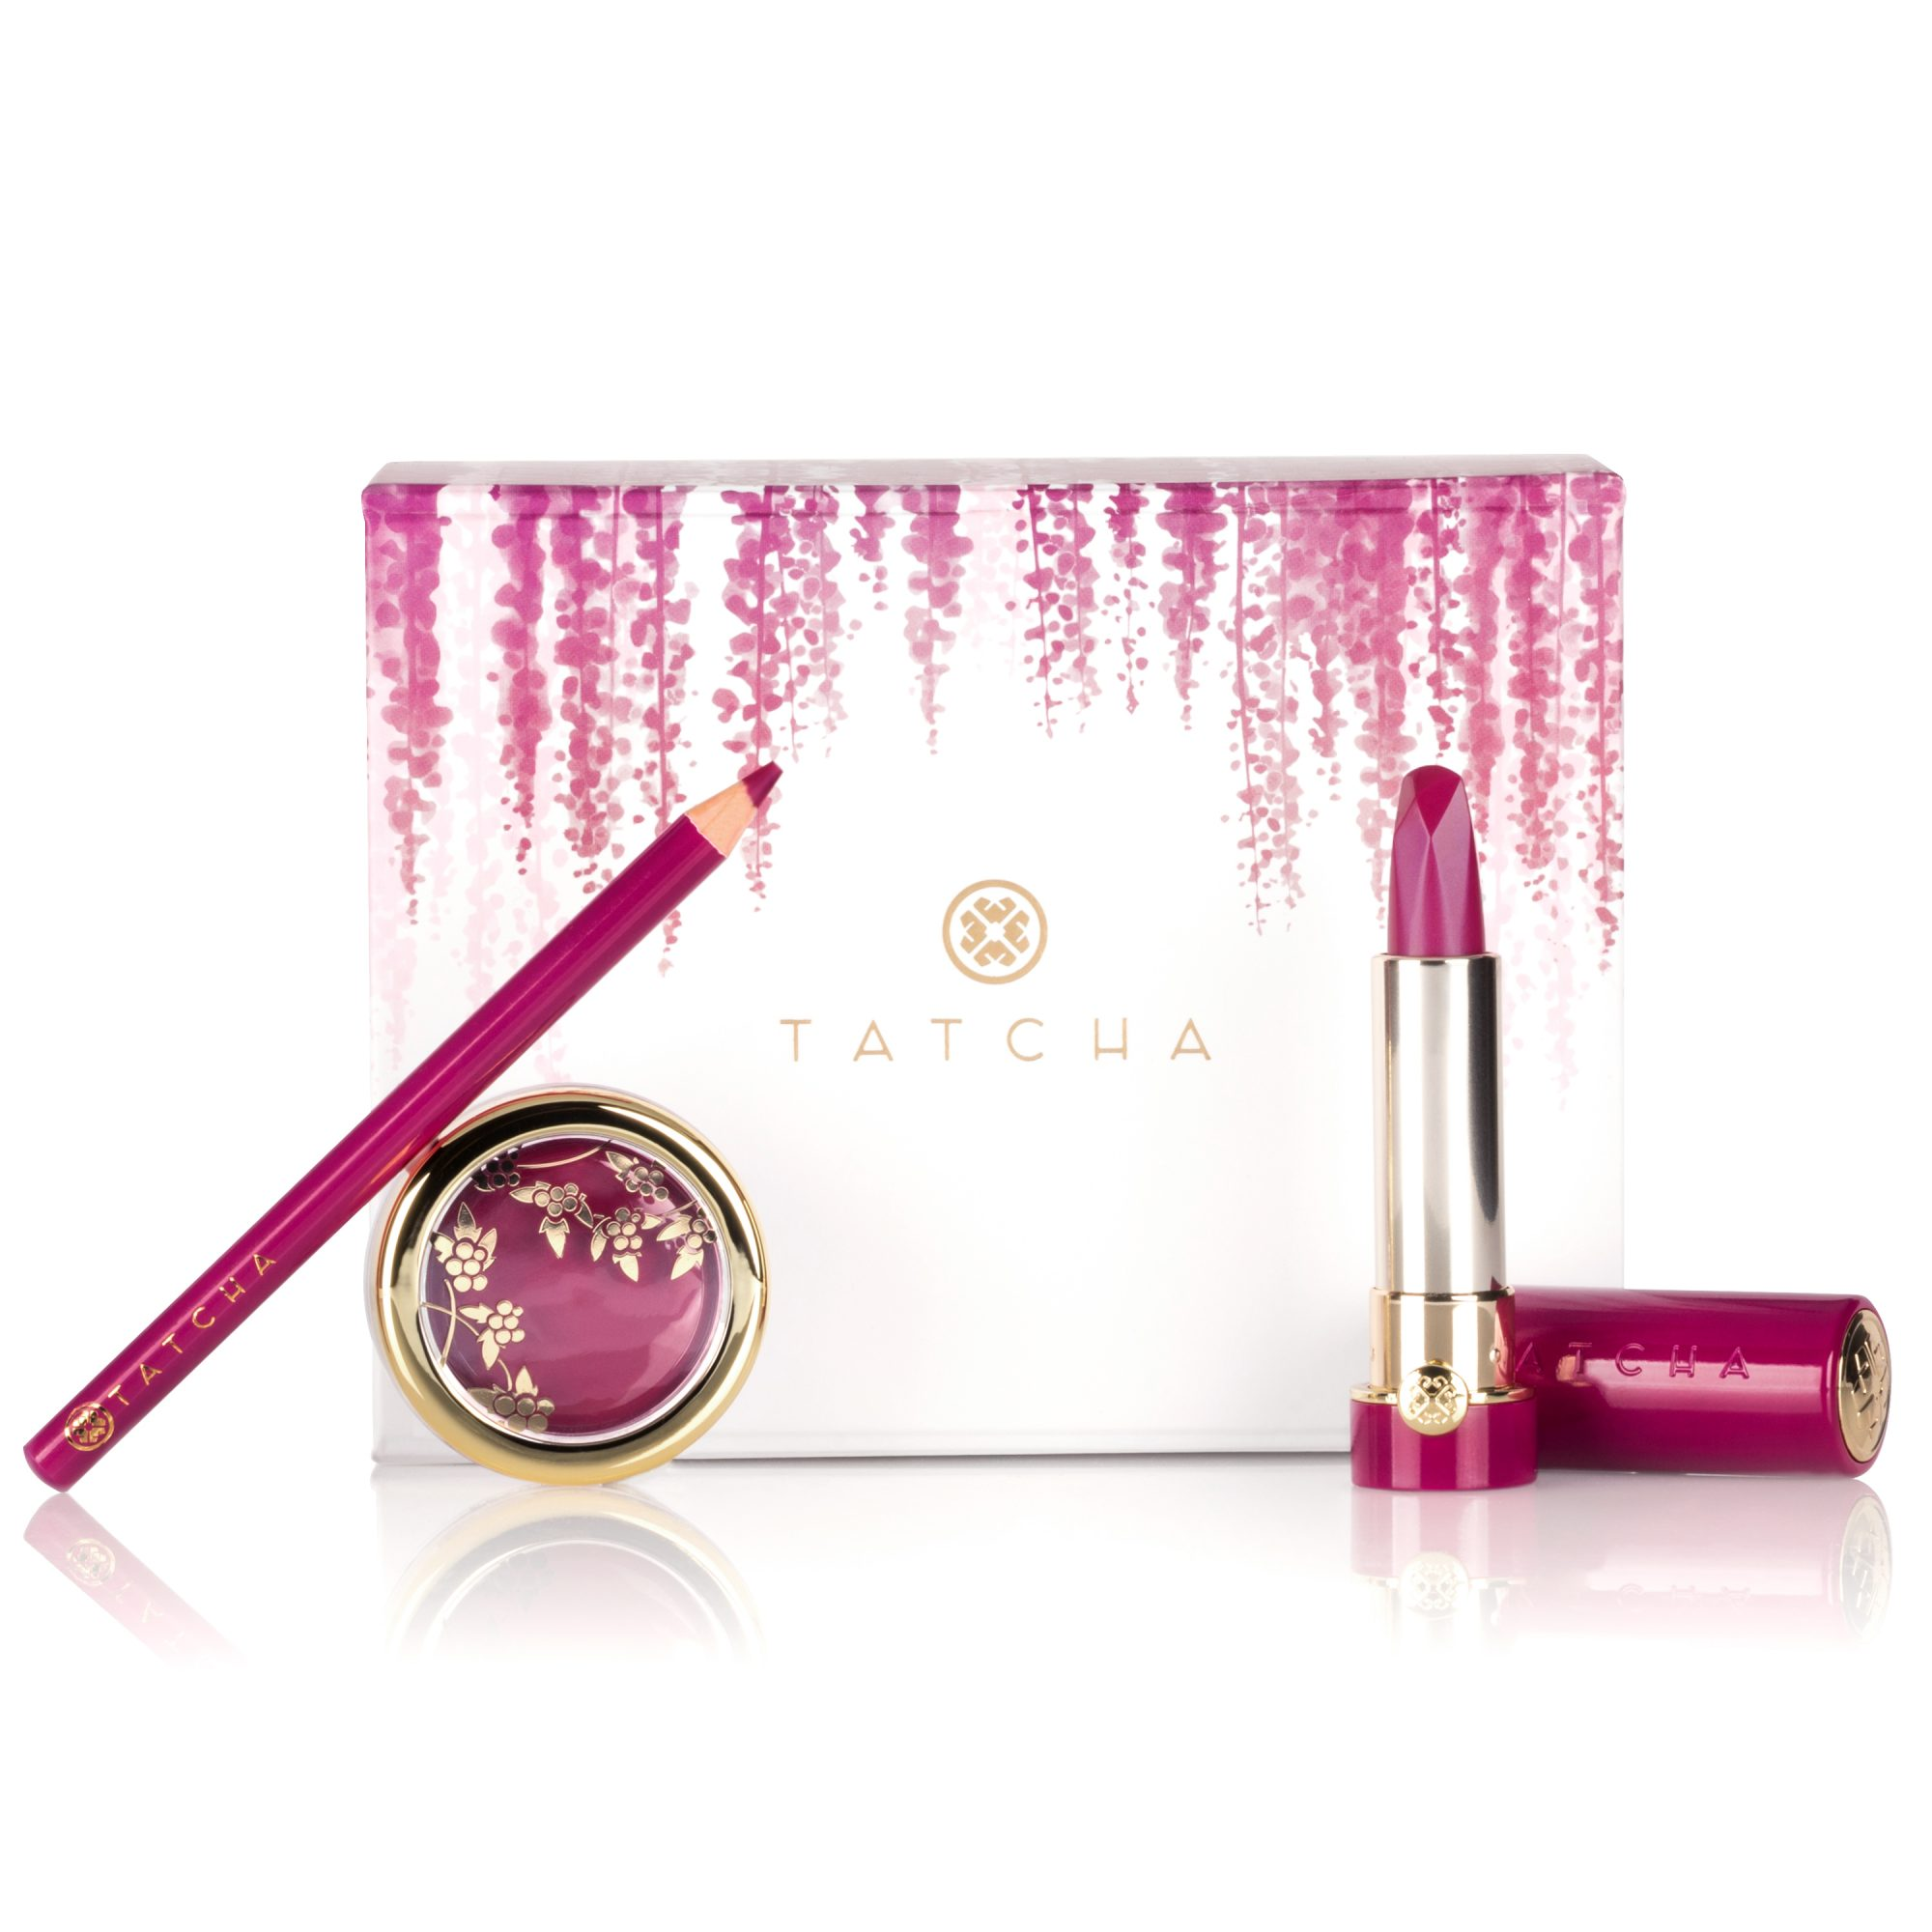 Tatcha BeautyBerry Lipstick Trio